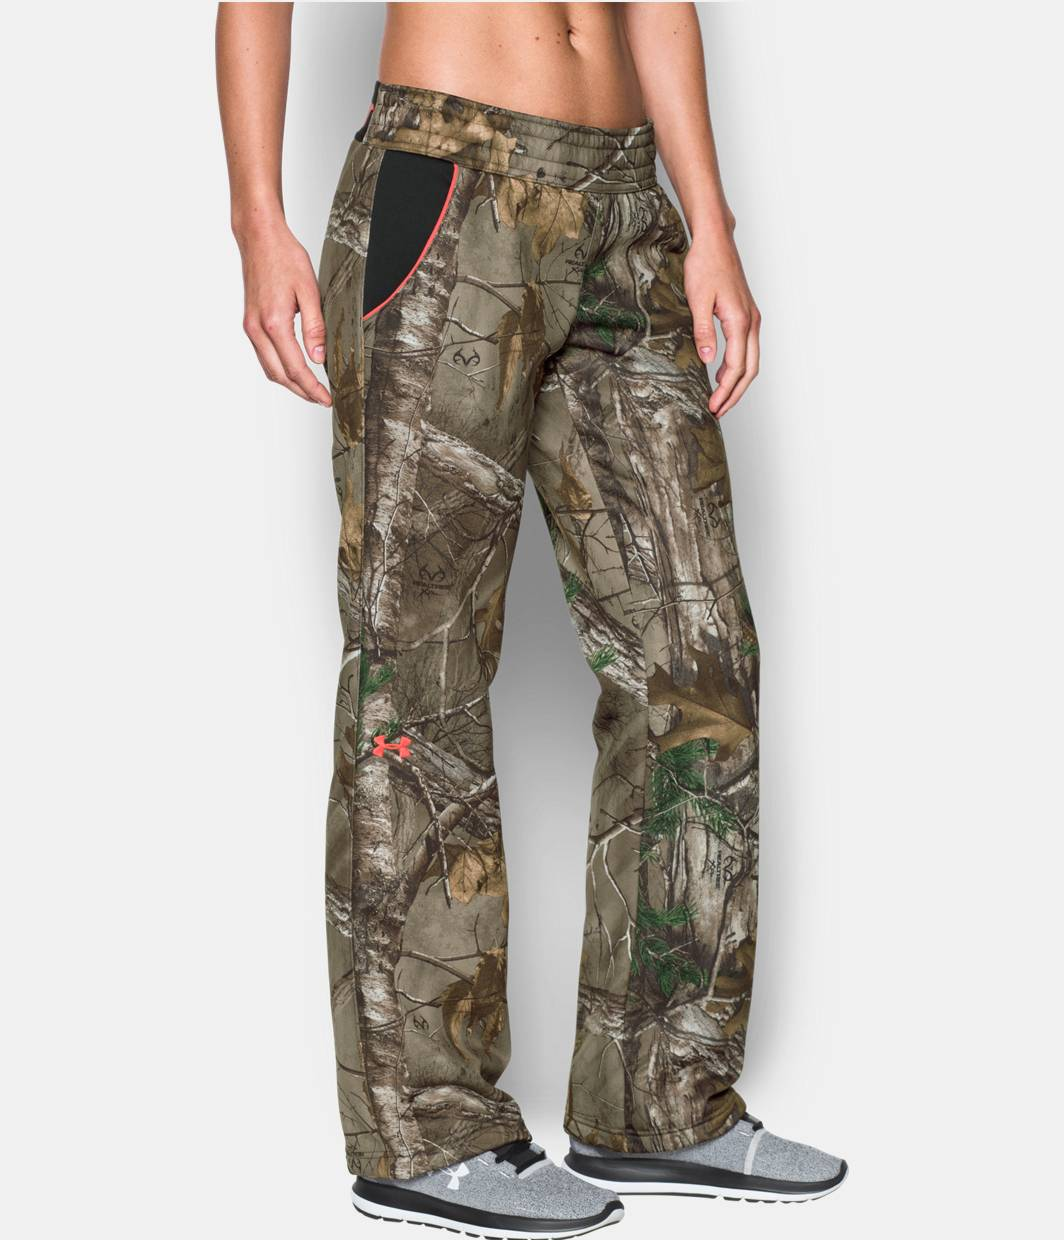 New Under Armour 1260161946 Womens Camo Fleece Hunting Pants In Realtree